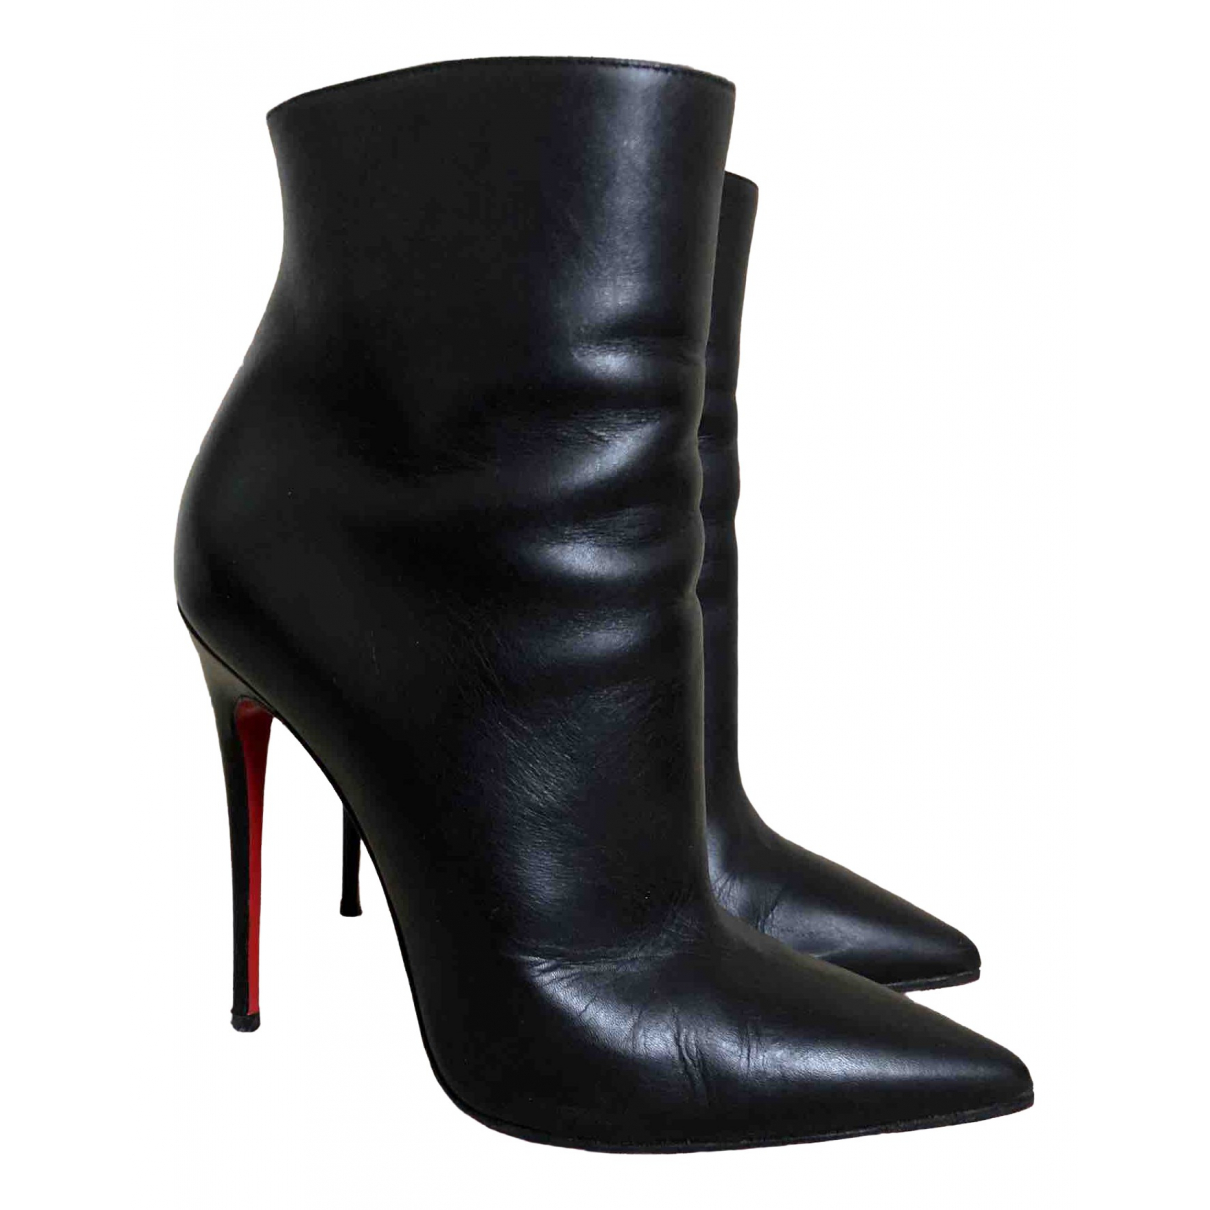 Christian Louboutin So Kate Booty Stiefeletten in  Schwarz Leder